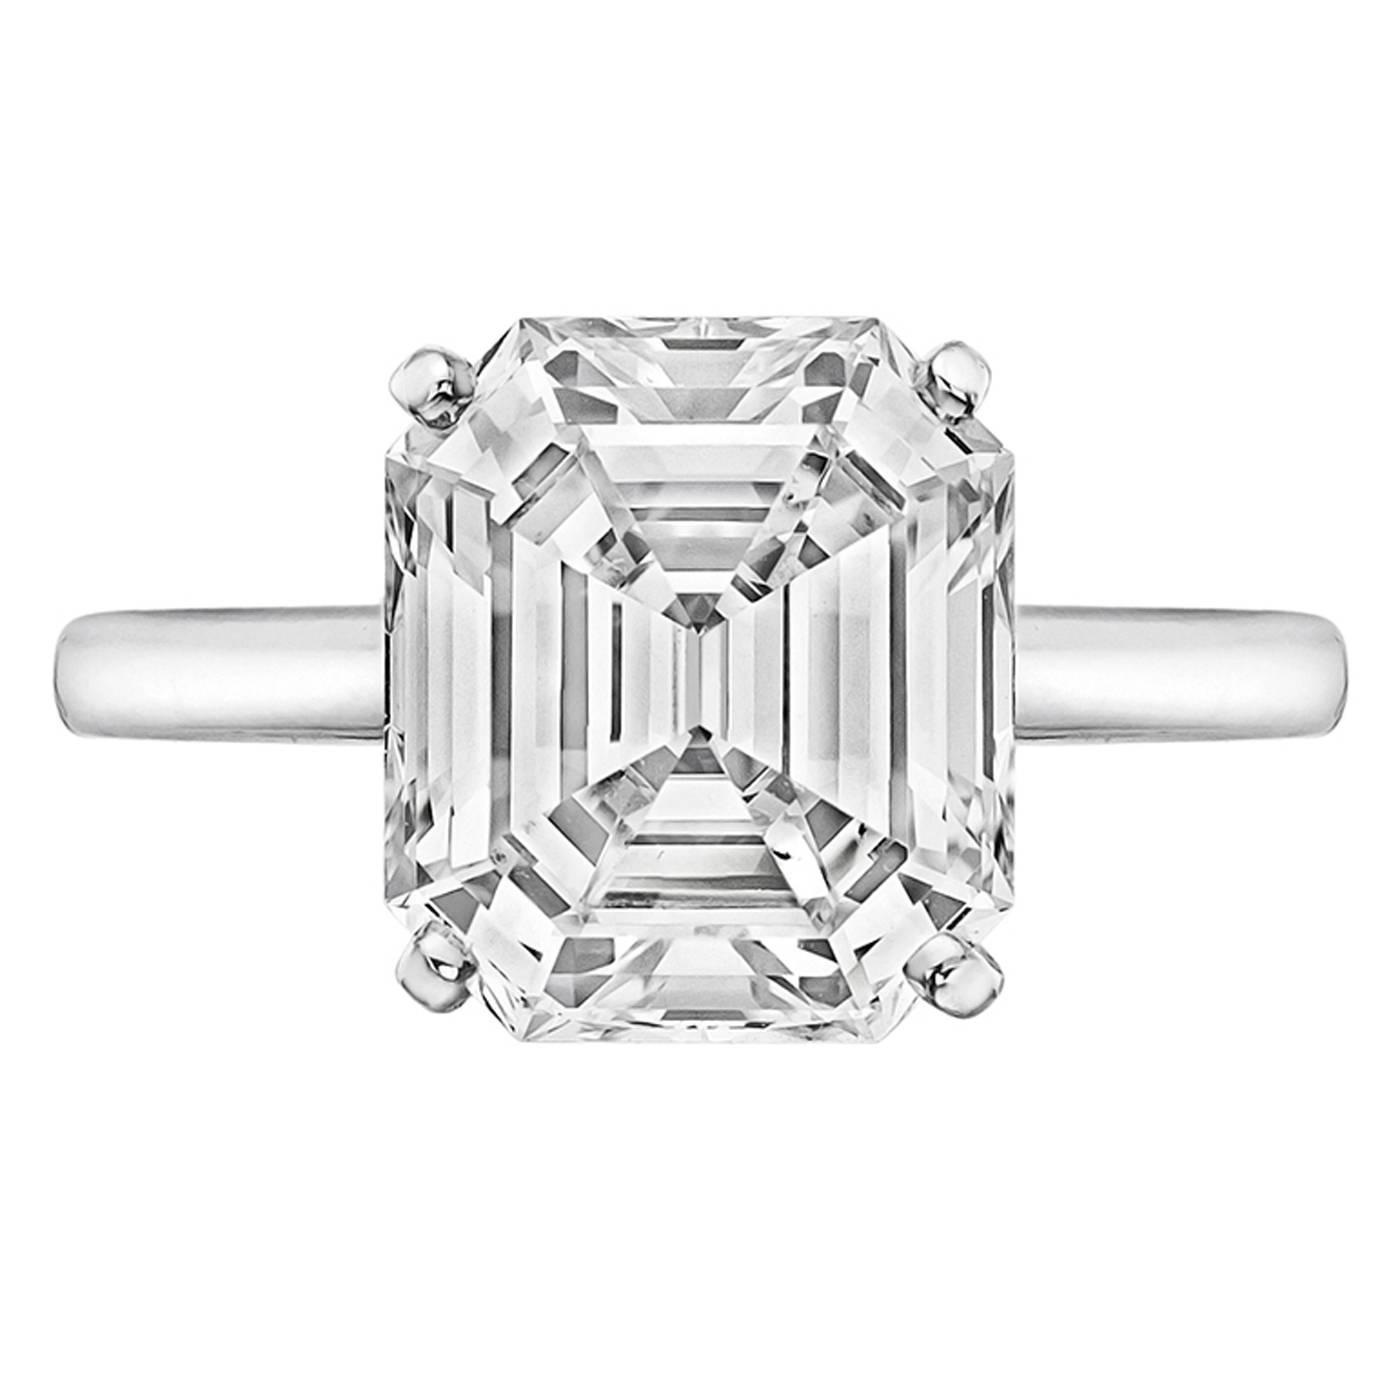 agi solitaire with last rings guard illusion ring products item a diamond engagement white